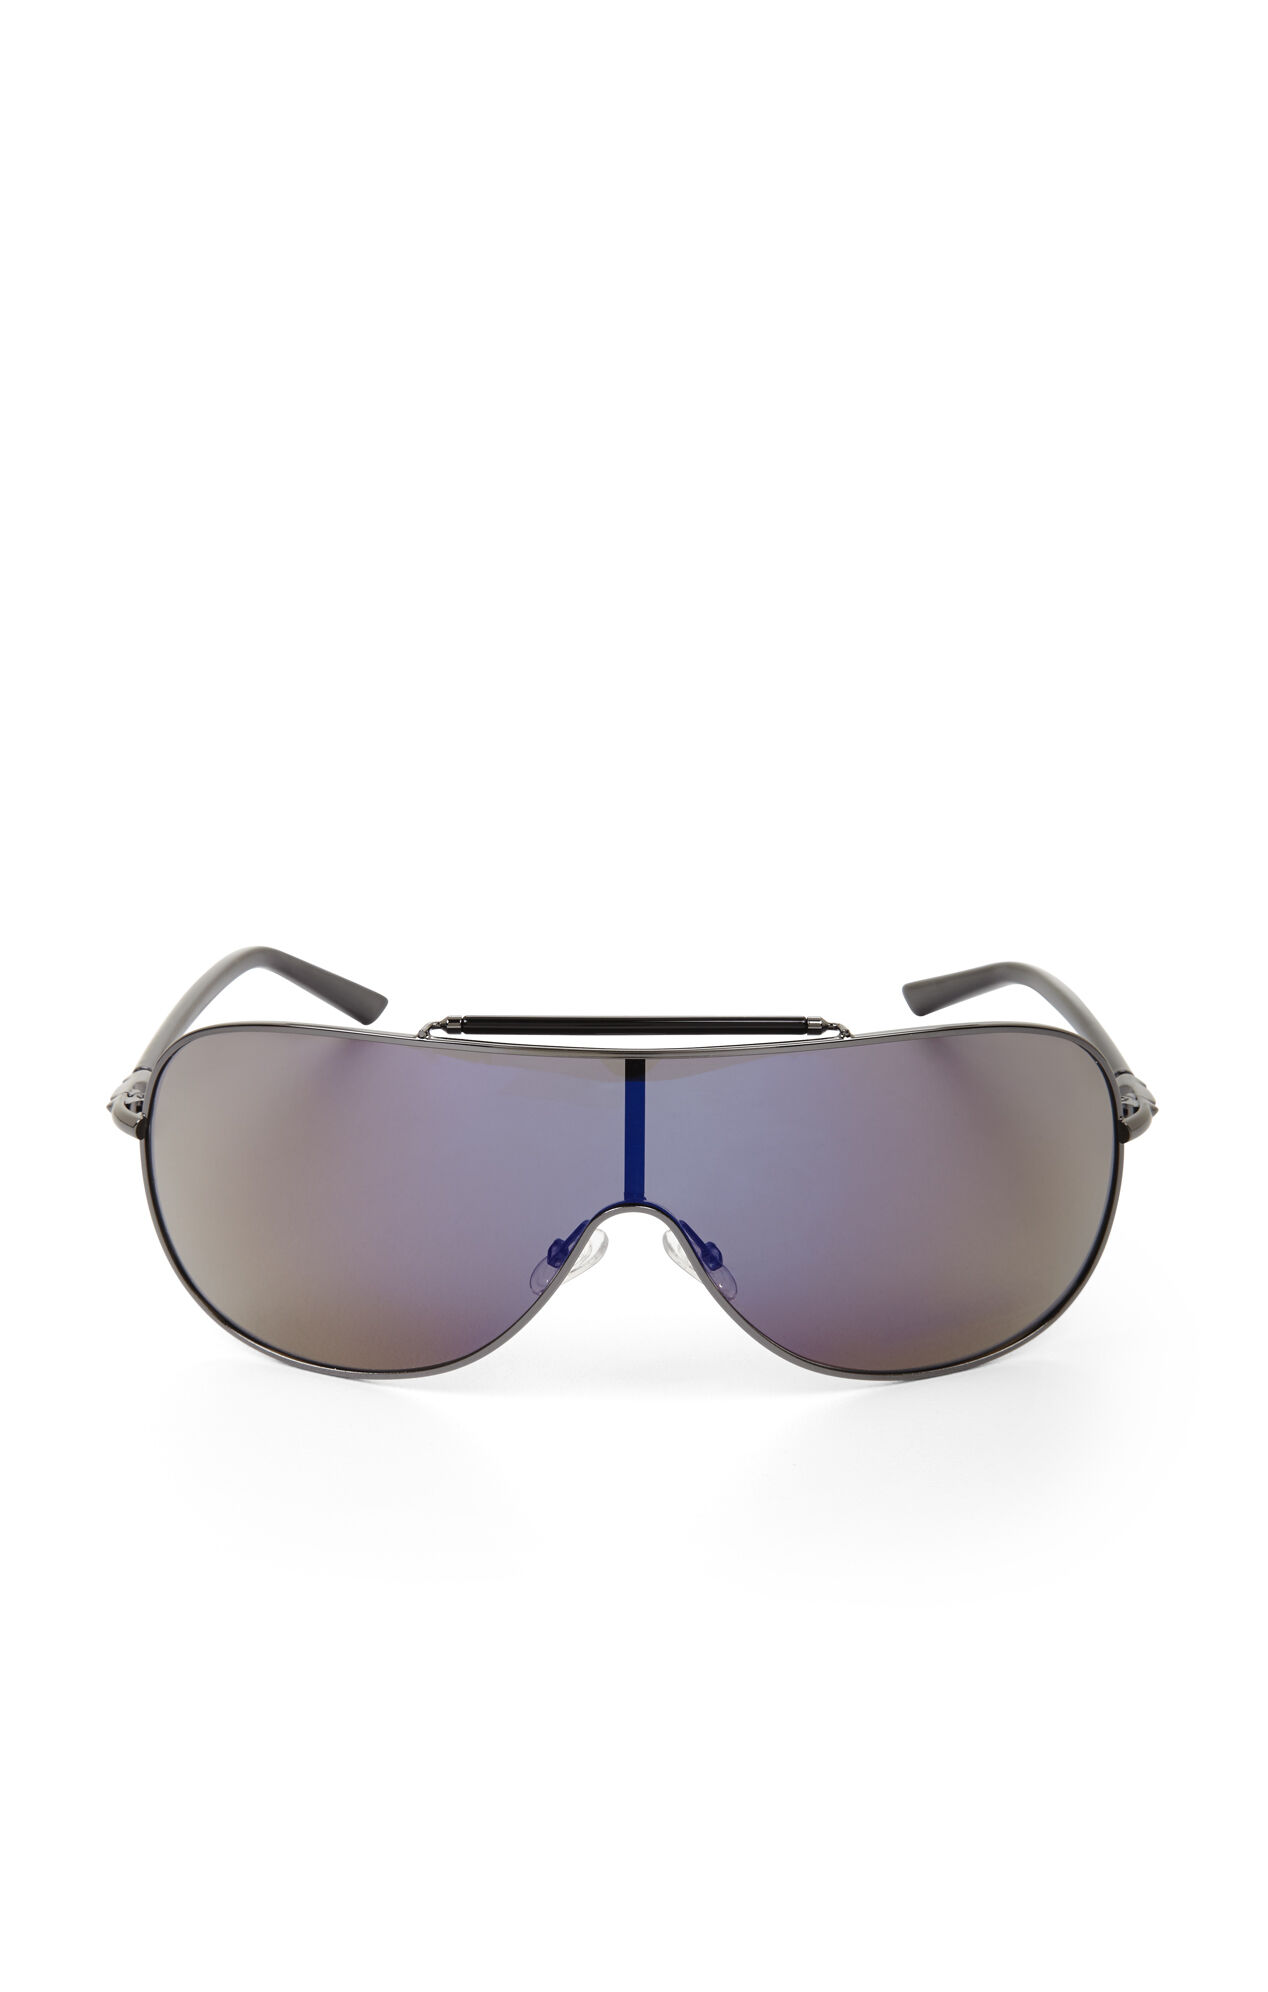 Mirrored Shield Aviator Sunglasses